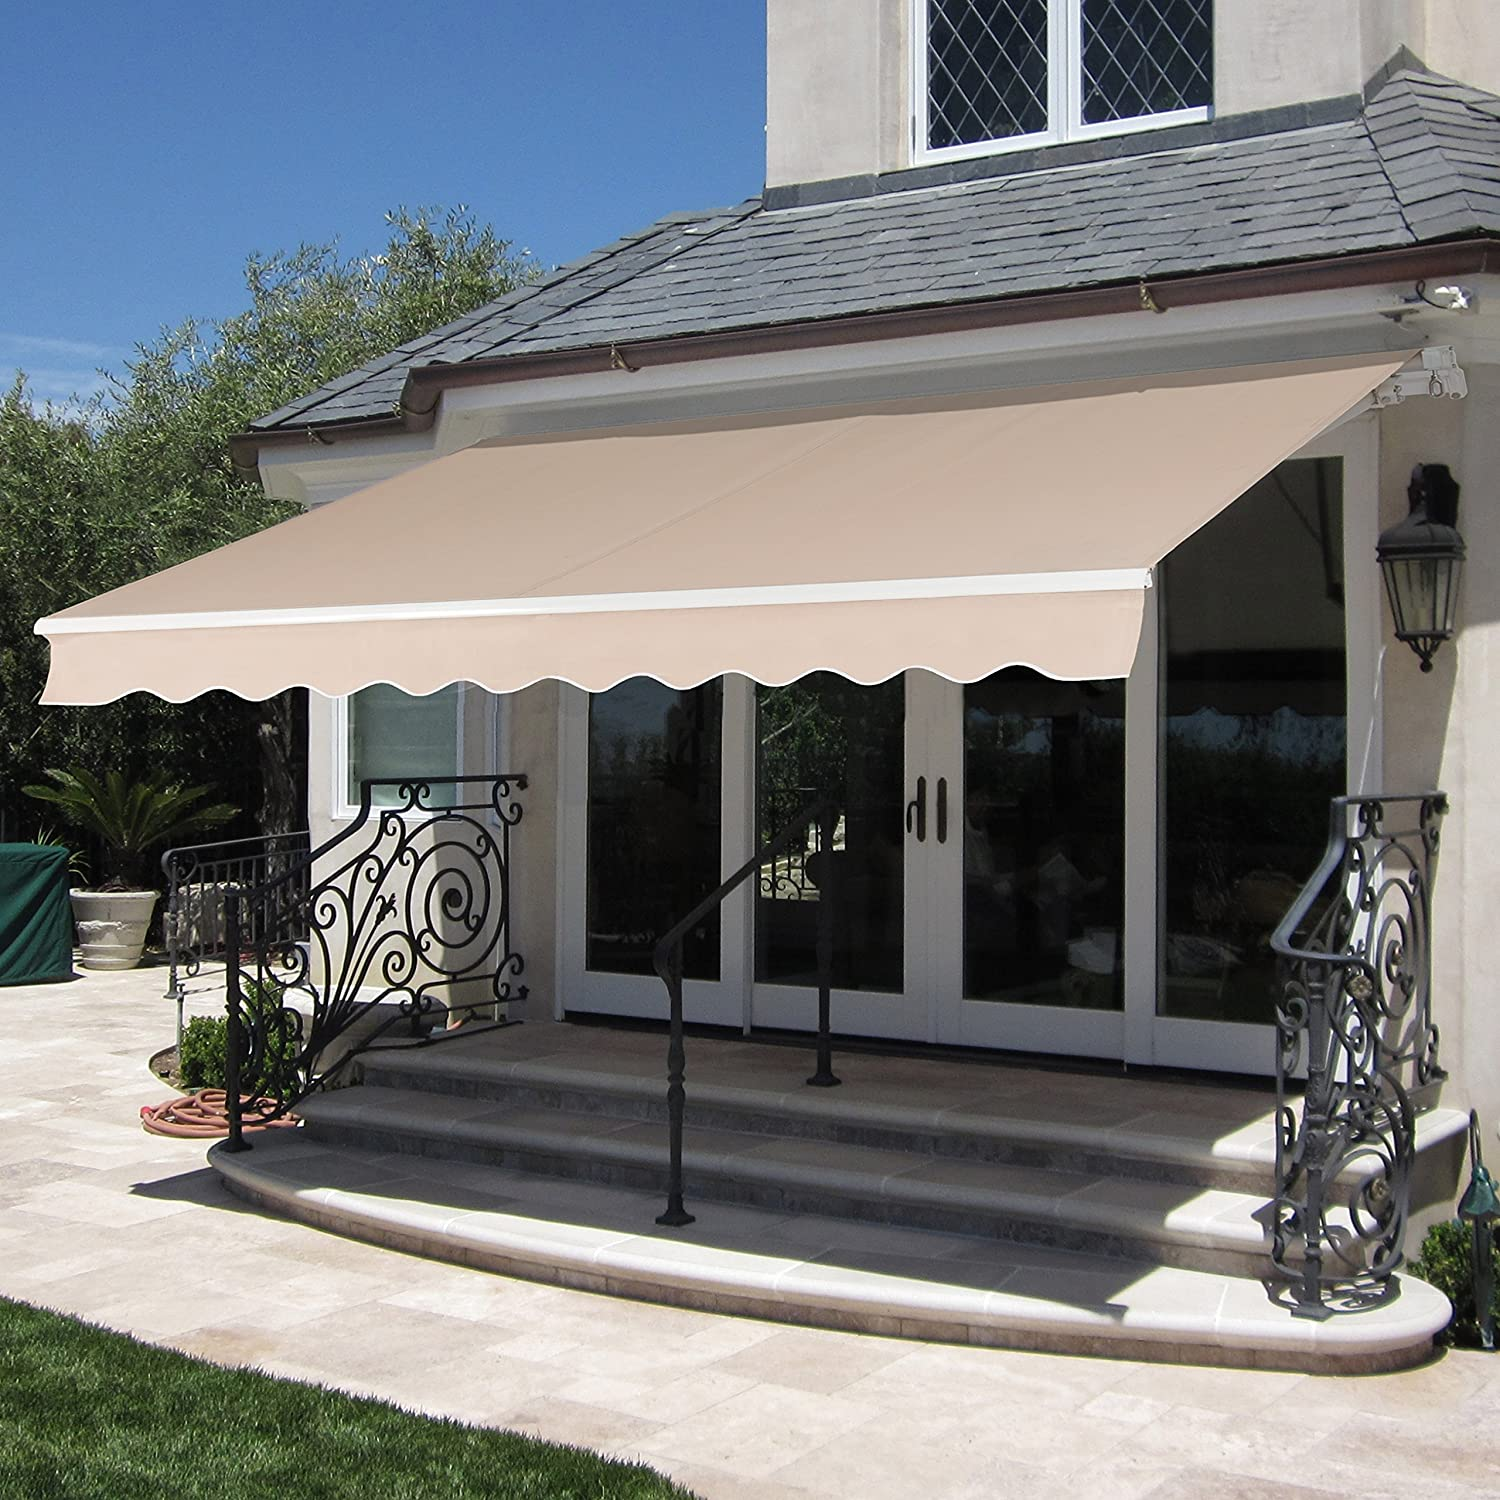 Best Choice Products 98x80in Retractable Aluminum Patio Deck Awning Cover, Canopy, Sunshade   Beige by Best Choice Products